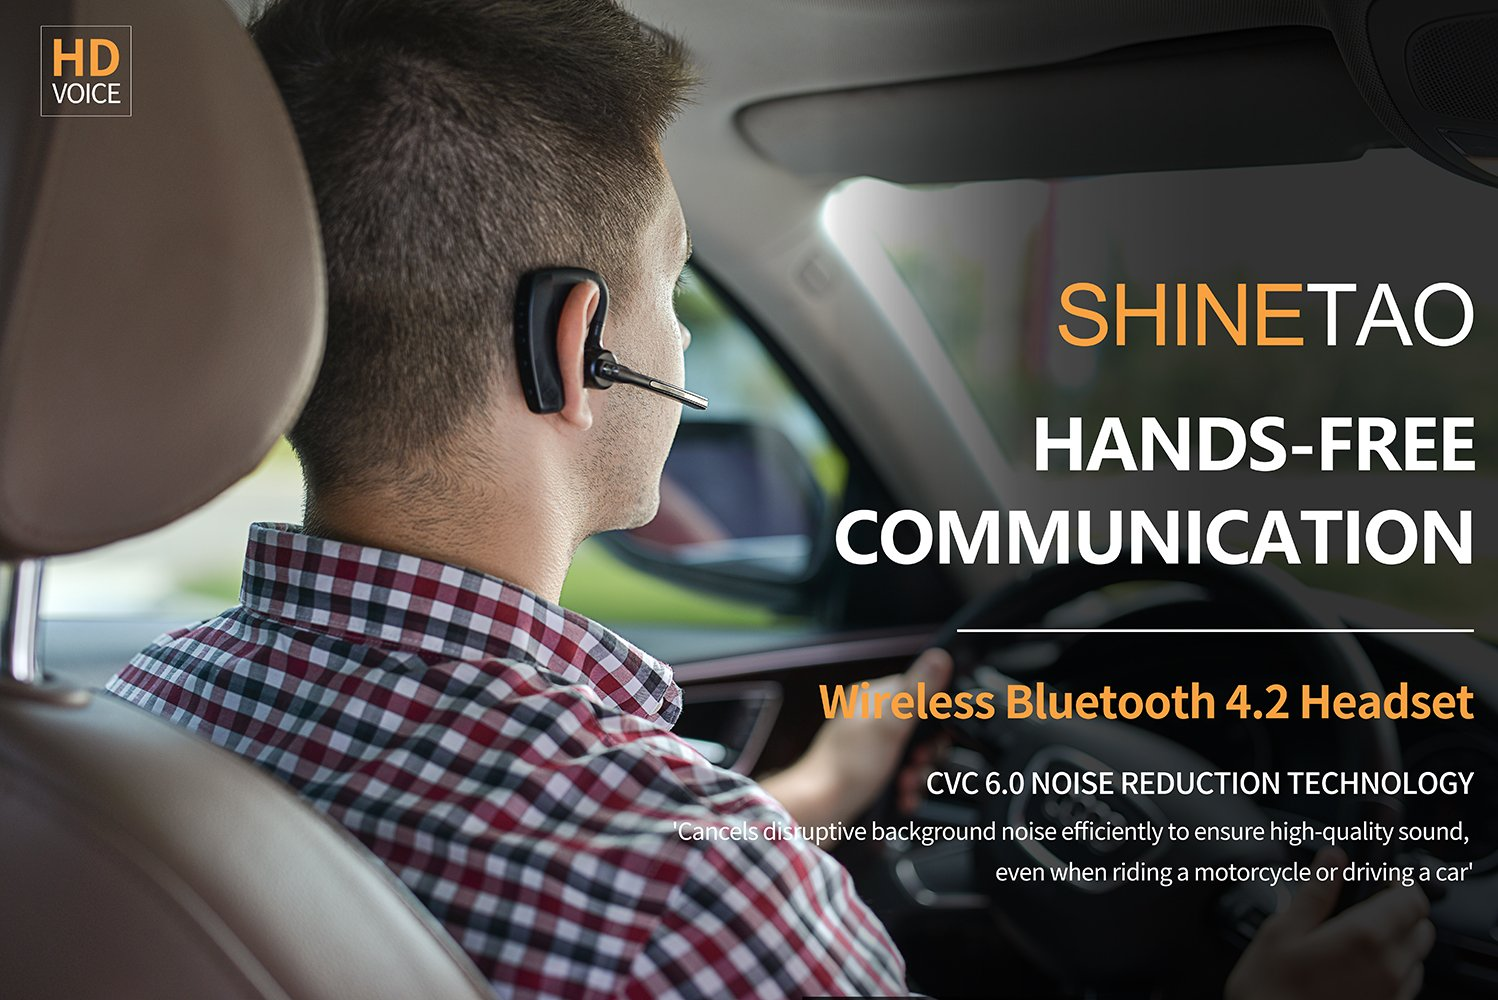 Amazon bluetooth headset v42 shinetao hands free bluetooth amazon bluetooth headset v42 shinetao hands free bluetooth earpiece for cell phones 2 hd microphones wireless earpieces for businessdrivingoffice thecheapjerseys Images